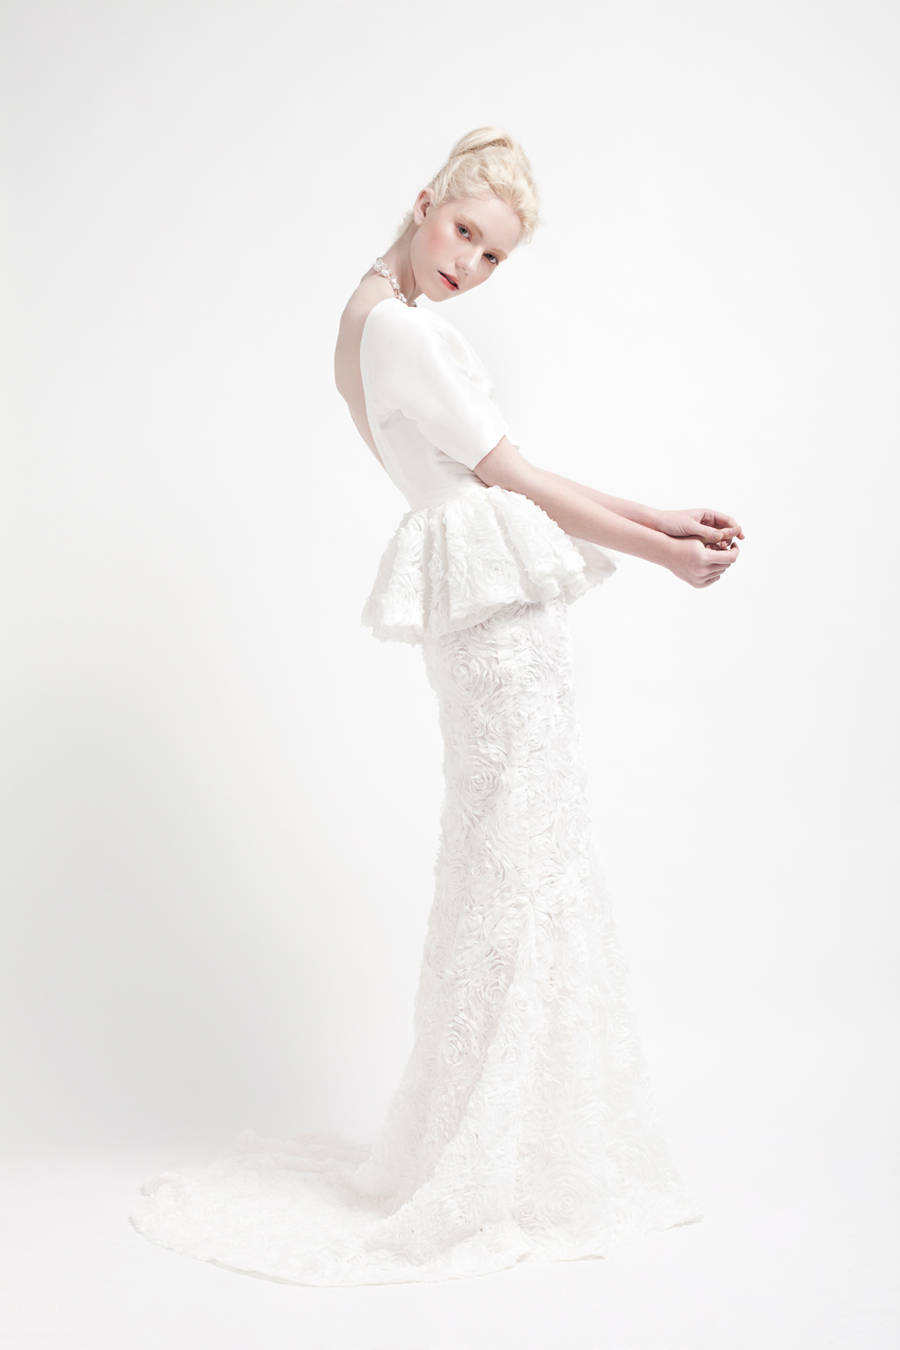 Garden Gown - Kelsey Genna Debut Bridal Collection